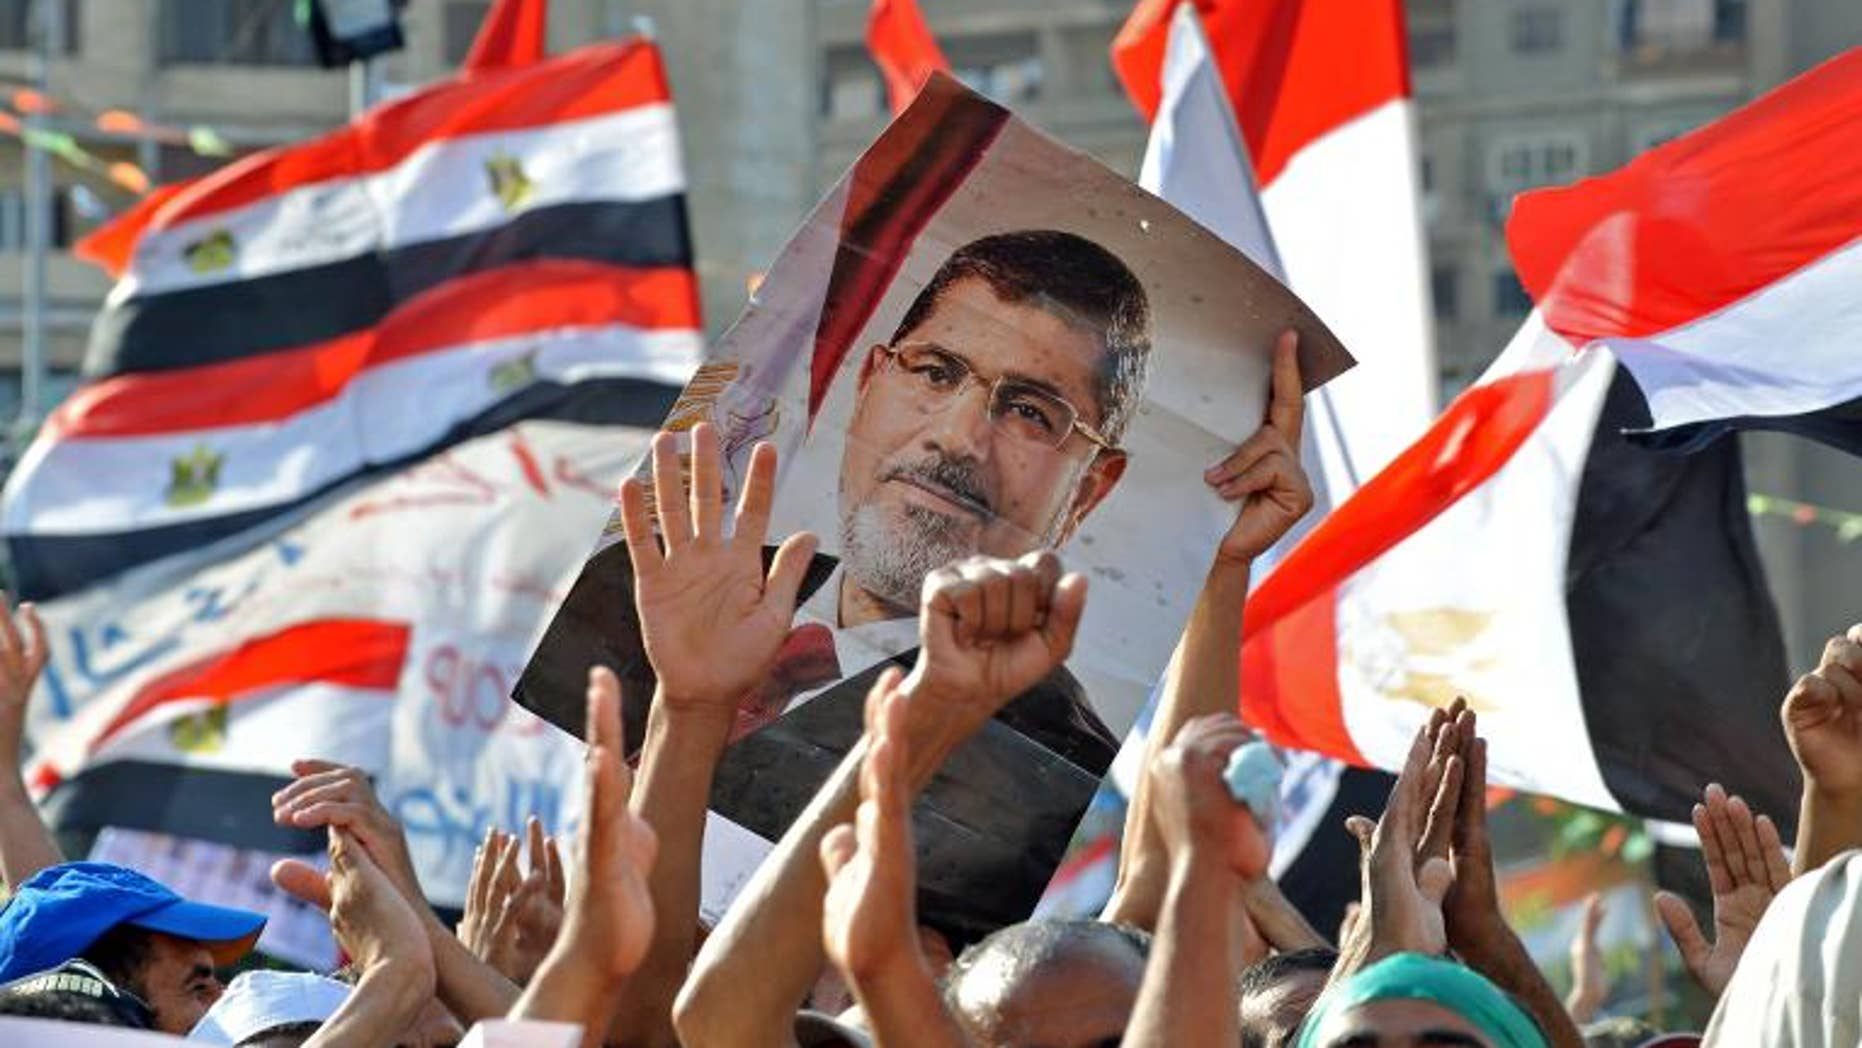 Egyptian supporters of deposed president Mohamed Morsi hold a sit in outside Cairo's Rabaa al-Adawiya mosque on July 24, 2013.